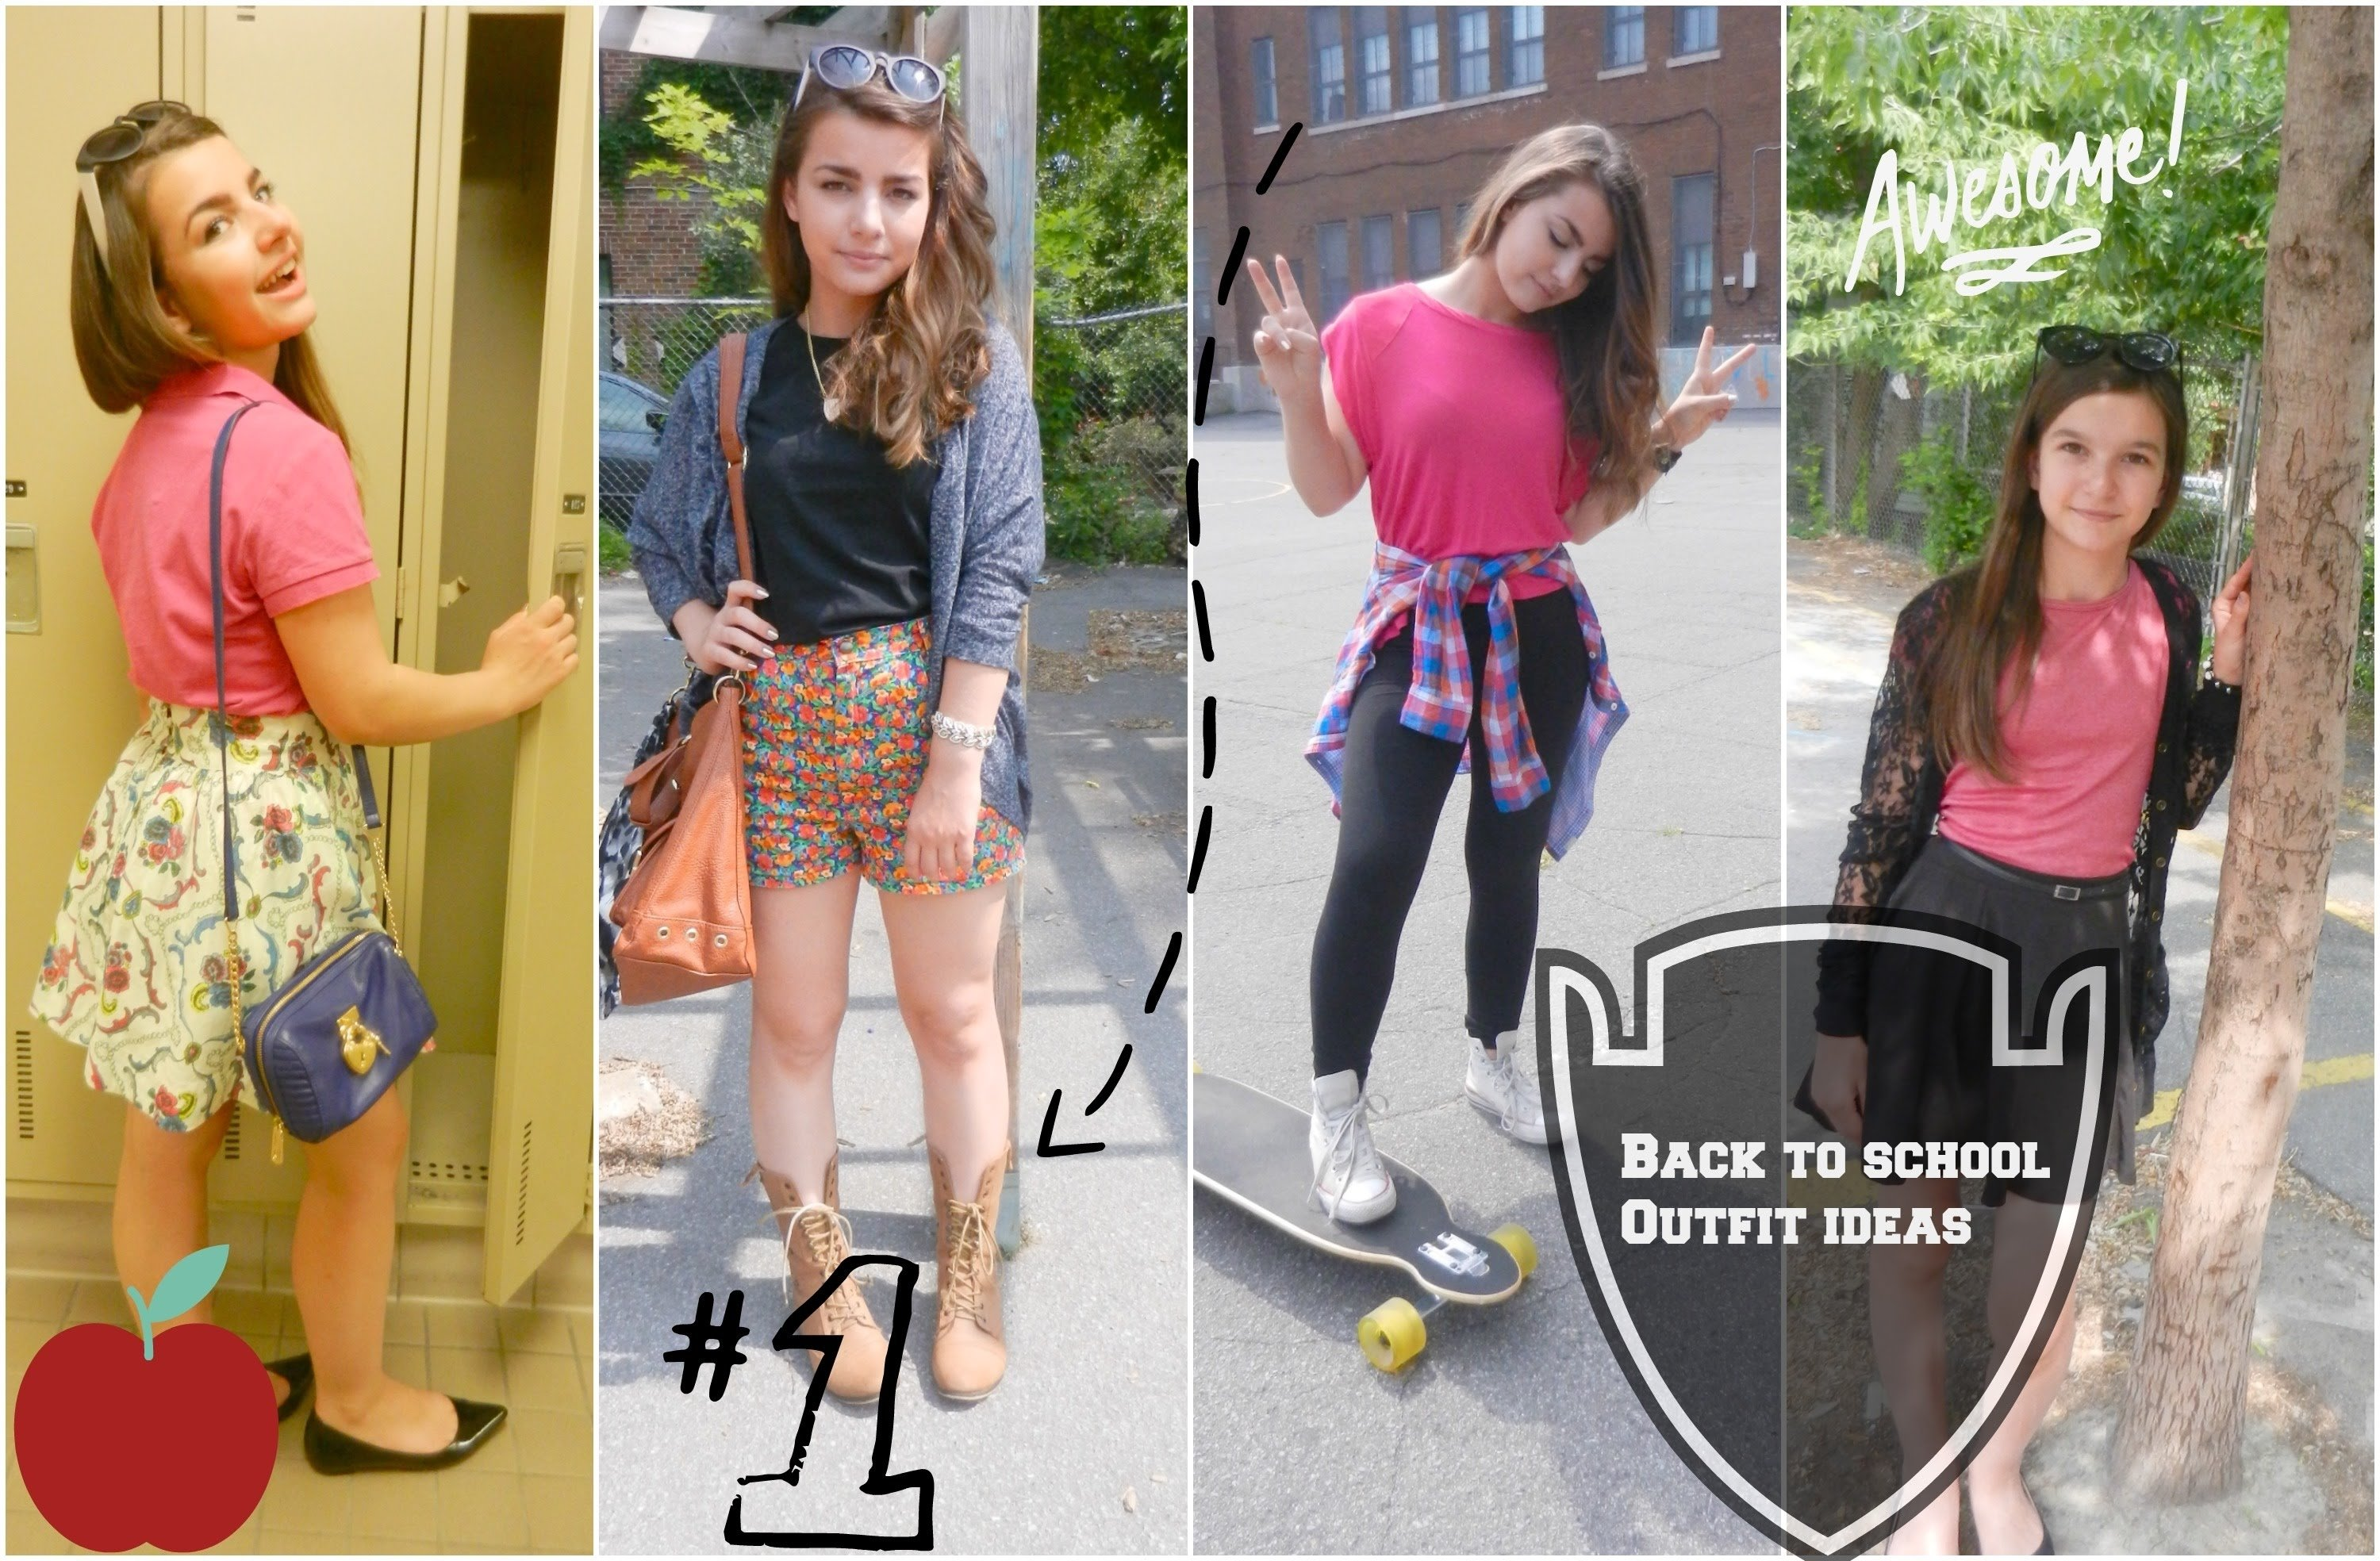 10 Awesome Cute Outfit Ideas For Middle School e29c90back to school outfit ideas 2014 2015e29c8eft my sister youtube 2 2020